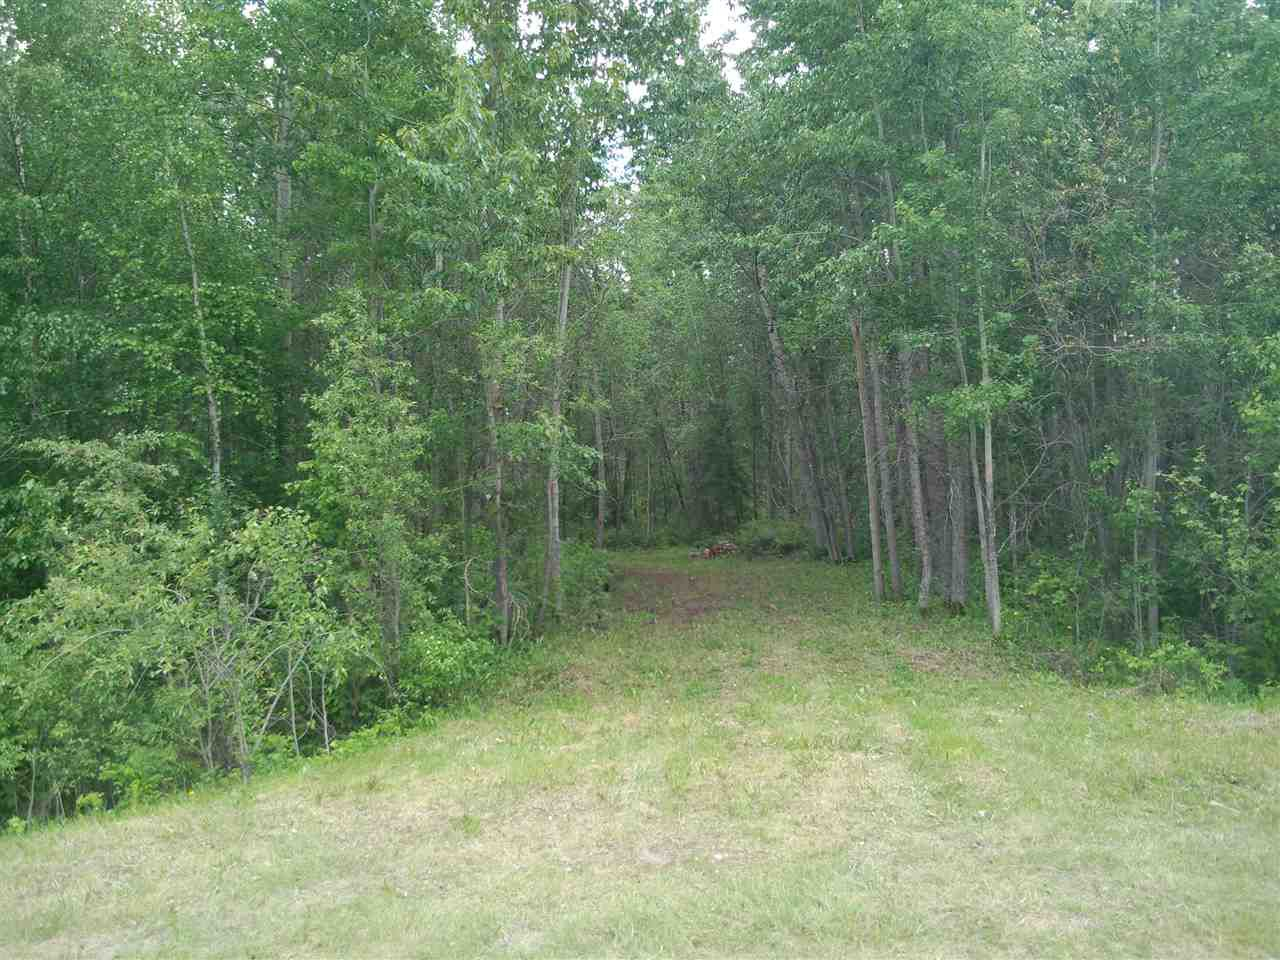 Main Photo: 32 53301 RGE RD 32 Road: Rural Parkland County Rural Land/Vacant Lot for sale : MLS®# E4134995